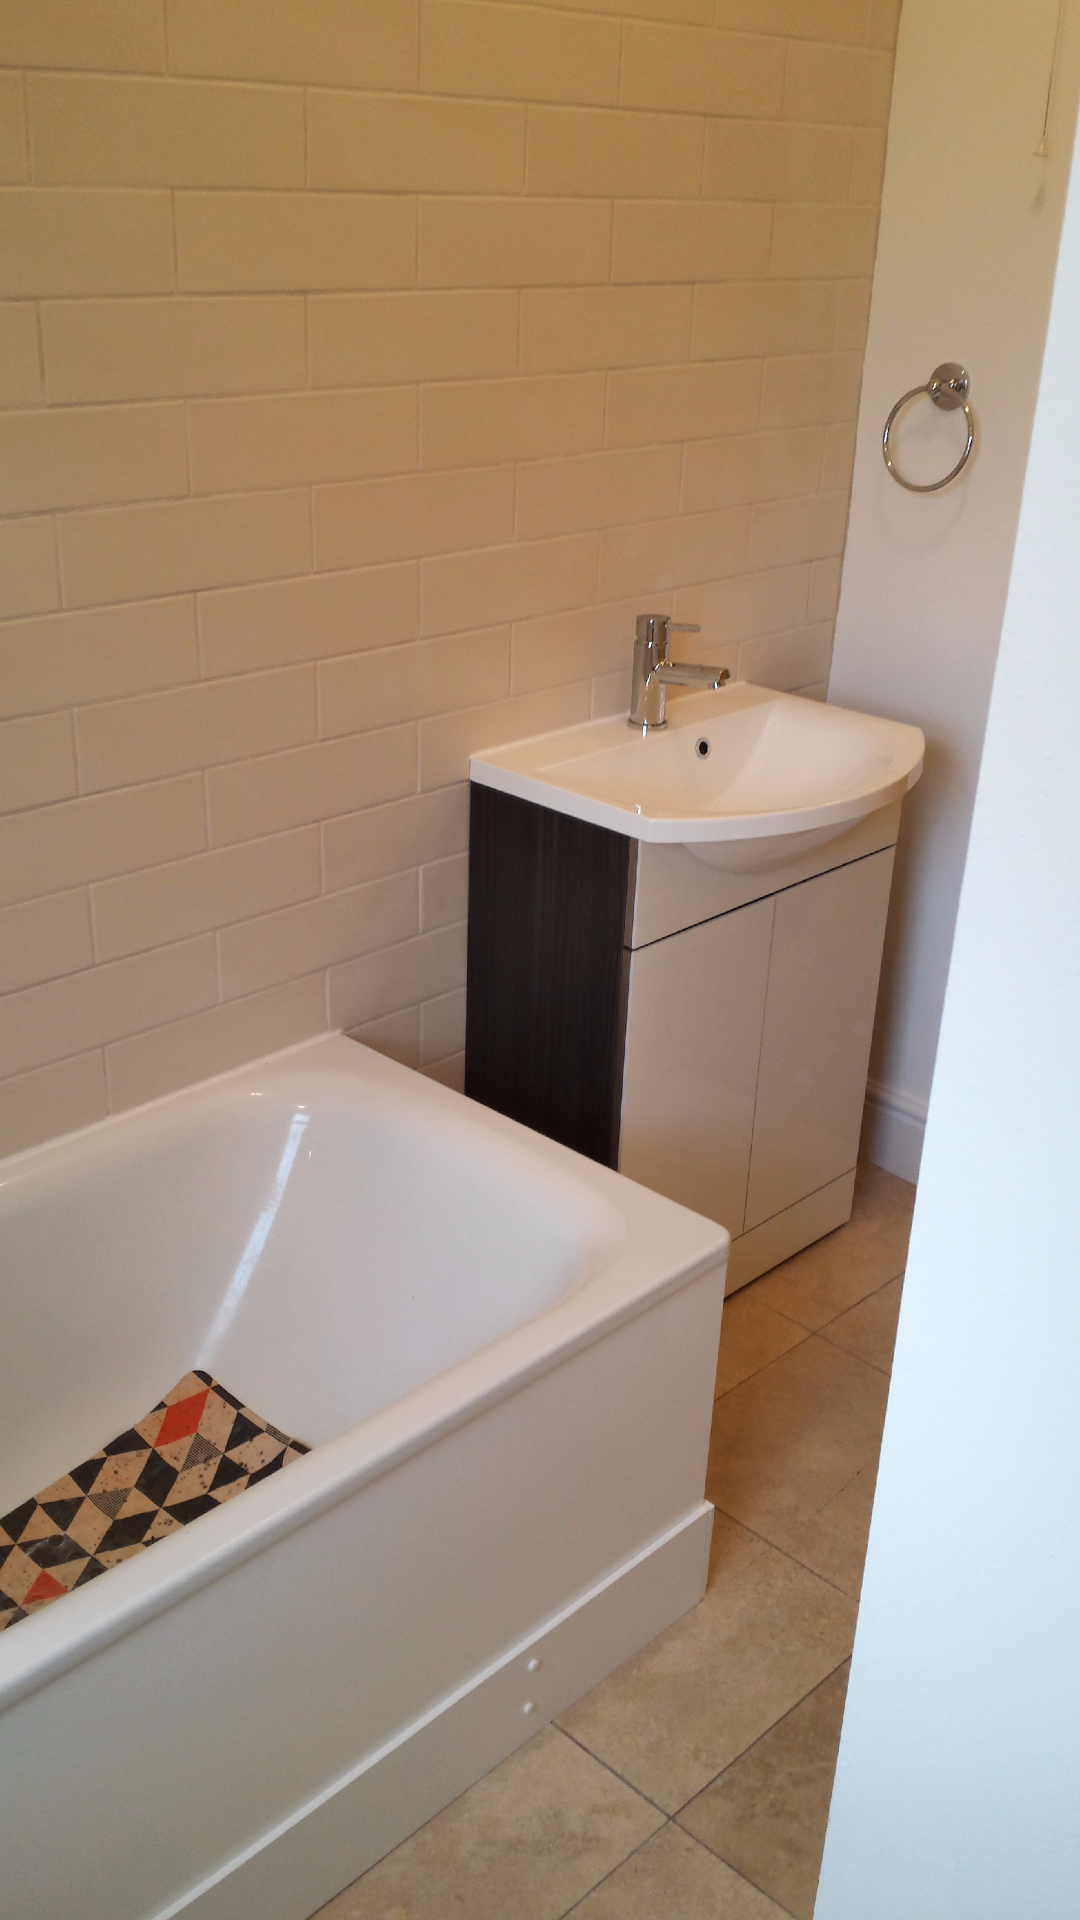 How much to fit a new bathroom - Fit New Bathroom Sink